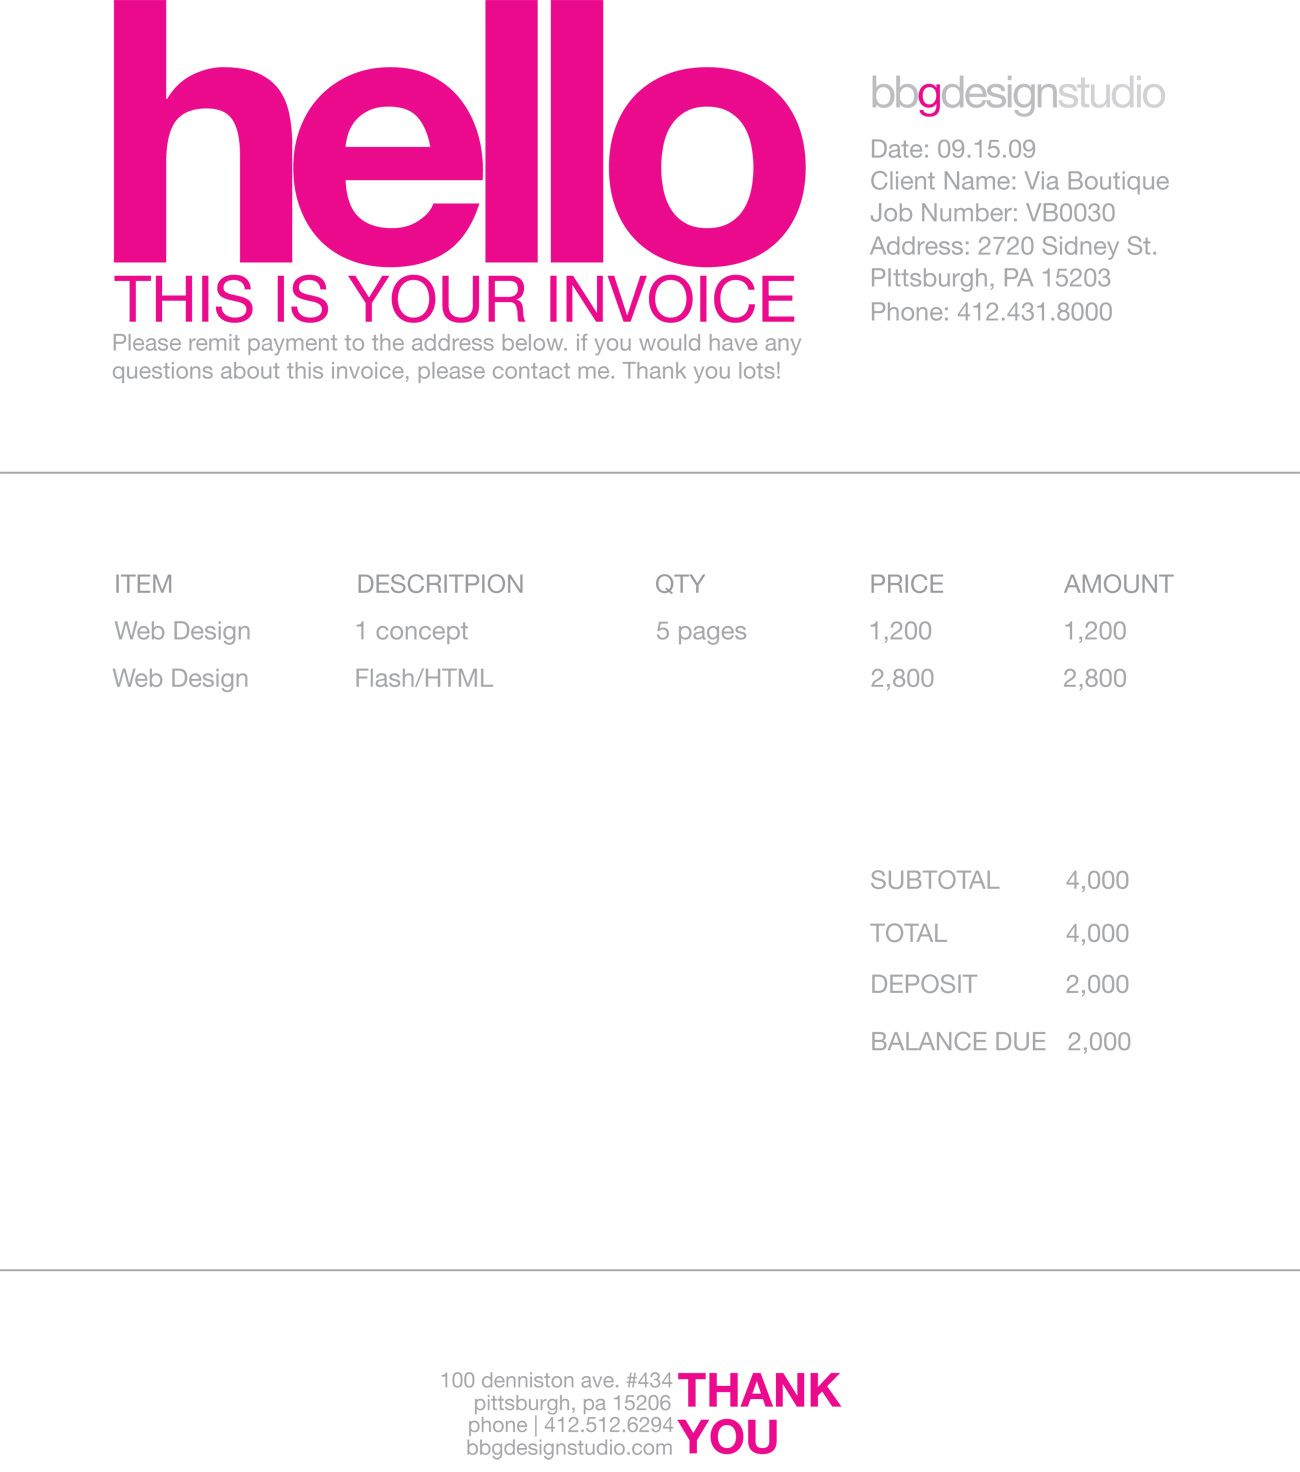 Aaaaeroincus  Winning  Images About Invoice Design On Pinterest With Outstanding Macys Receipt Besides Create A Fake Receipt Furthermore Tax Deductible Receipt Template With Cute Where Can I Buy Receipt Books Also Receipt For Meatballs In Addition Delivery Receipt Form And Rei Return Policy Without Receipt As Well As Nordstrom Returns Without Receipt Additionally Best Receipt Apps From Pinterestcom With Aaaaeroincus  Outstanding  Images About Invoice Design On Pinterest With Cute Macys Receipt Besides Create A Fake Receipt Furthermore Tax Deductible Receipt Template And Winning Where Can I Buy Receipt Books Also Receipt For Meatballs In Addition Delivery Receipt Form From Pinterestcom